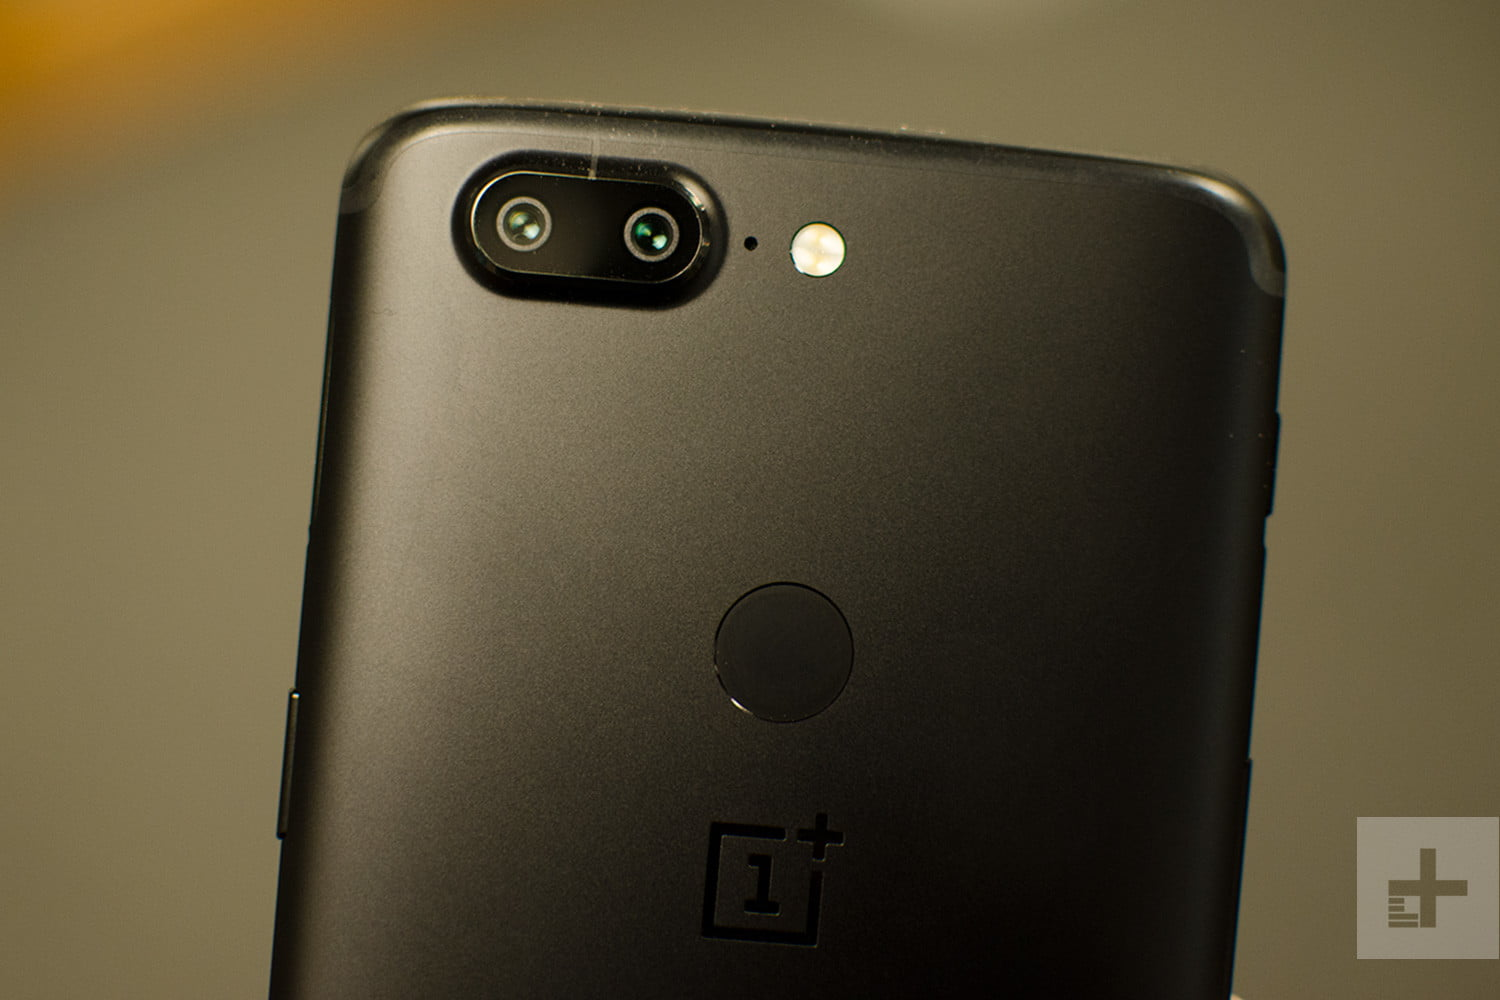 OnePlus 5T News Specs Price Release Date and More  Digital Trends